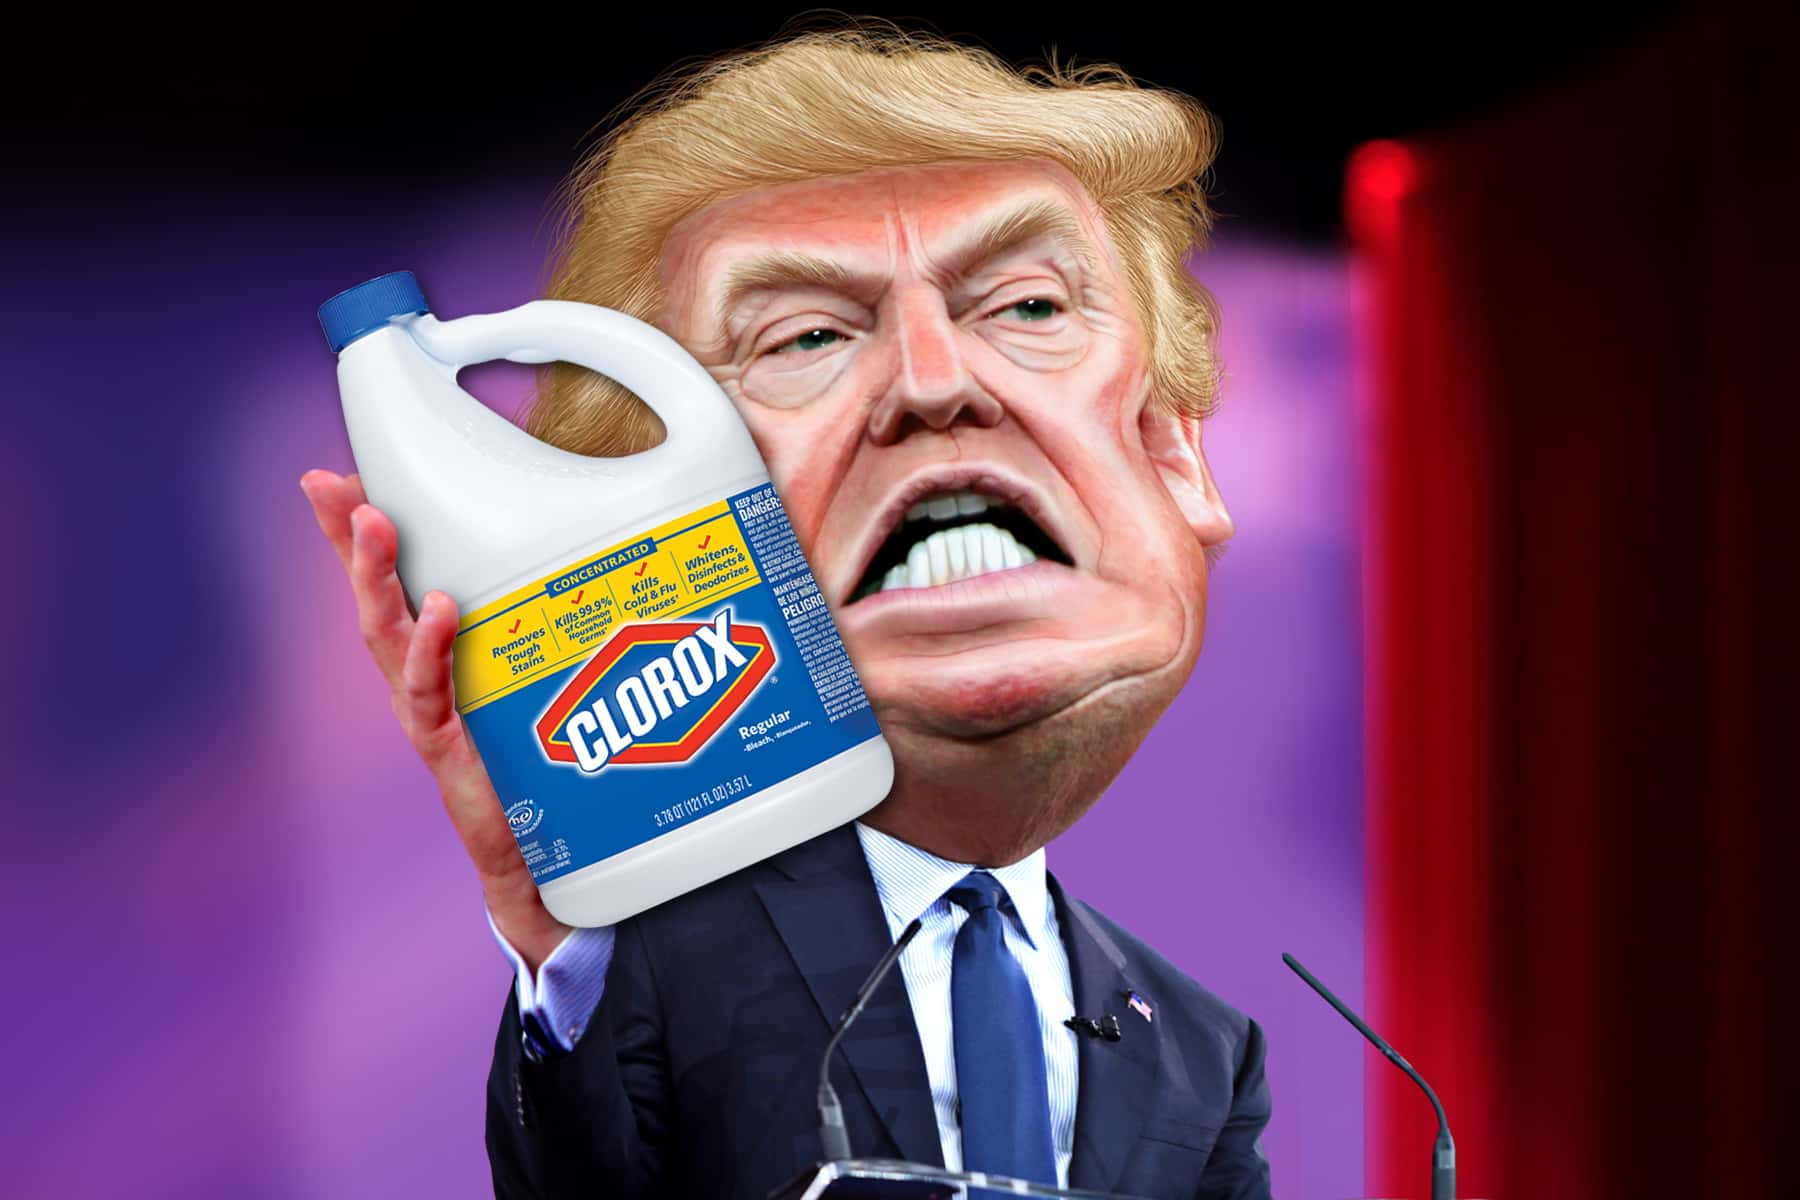 PSA: Please do not follow Trump's suggestion to inject bleach as a cure for  coronavirus | The Milwaukee Independent